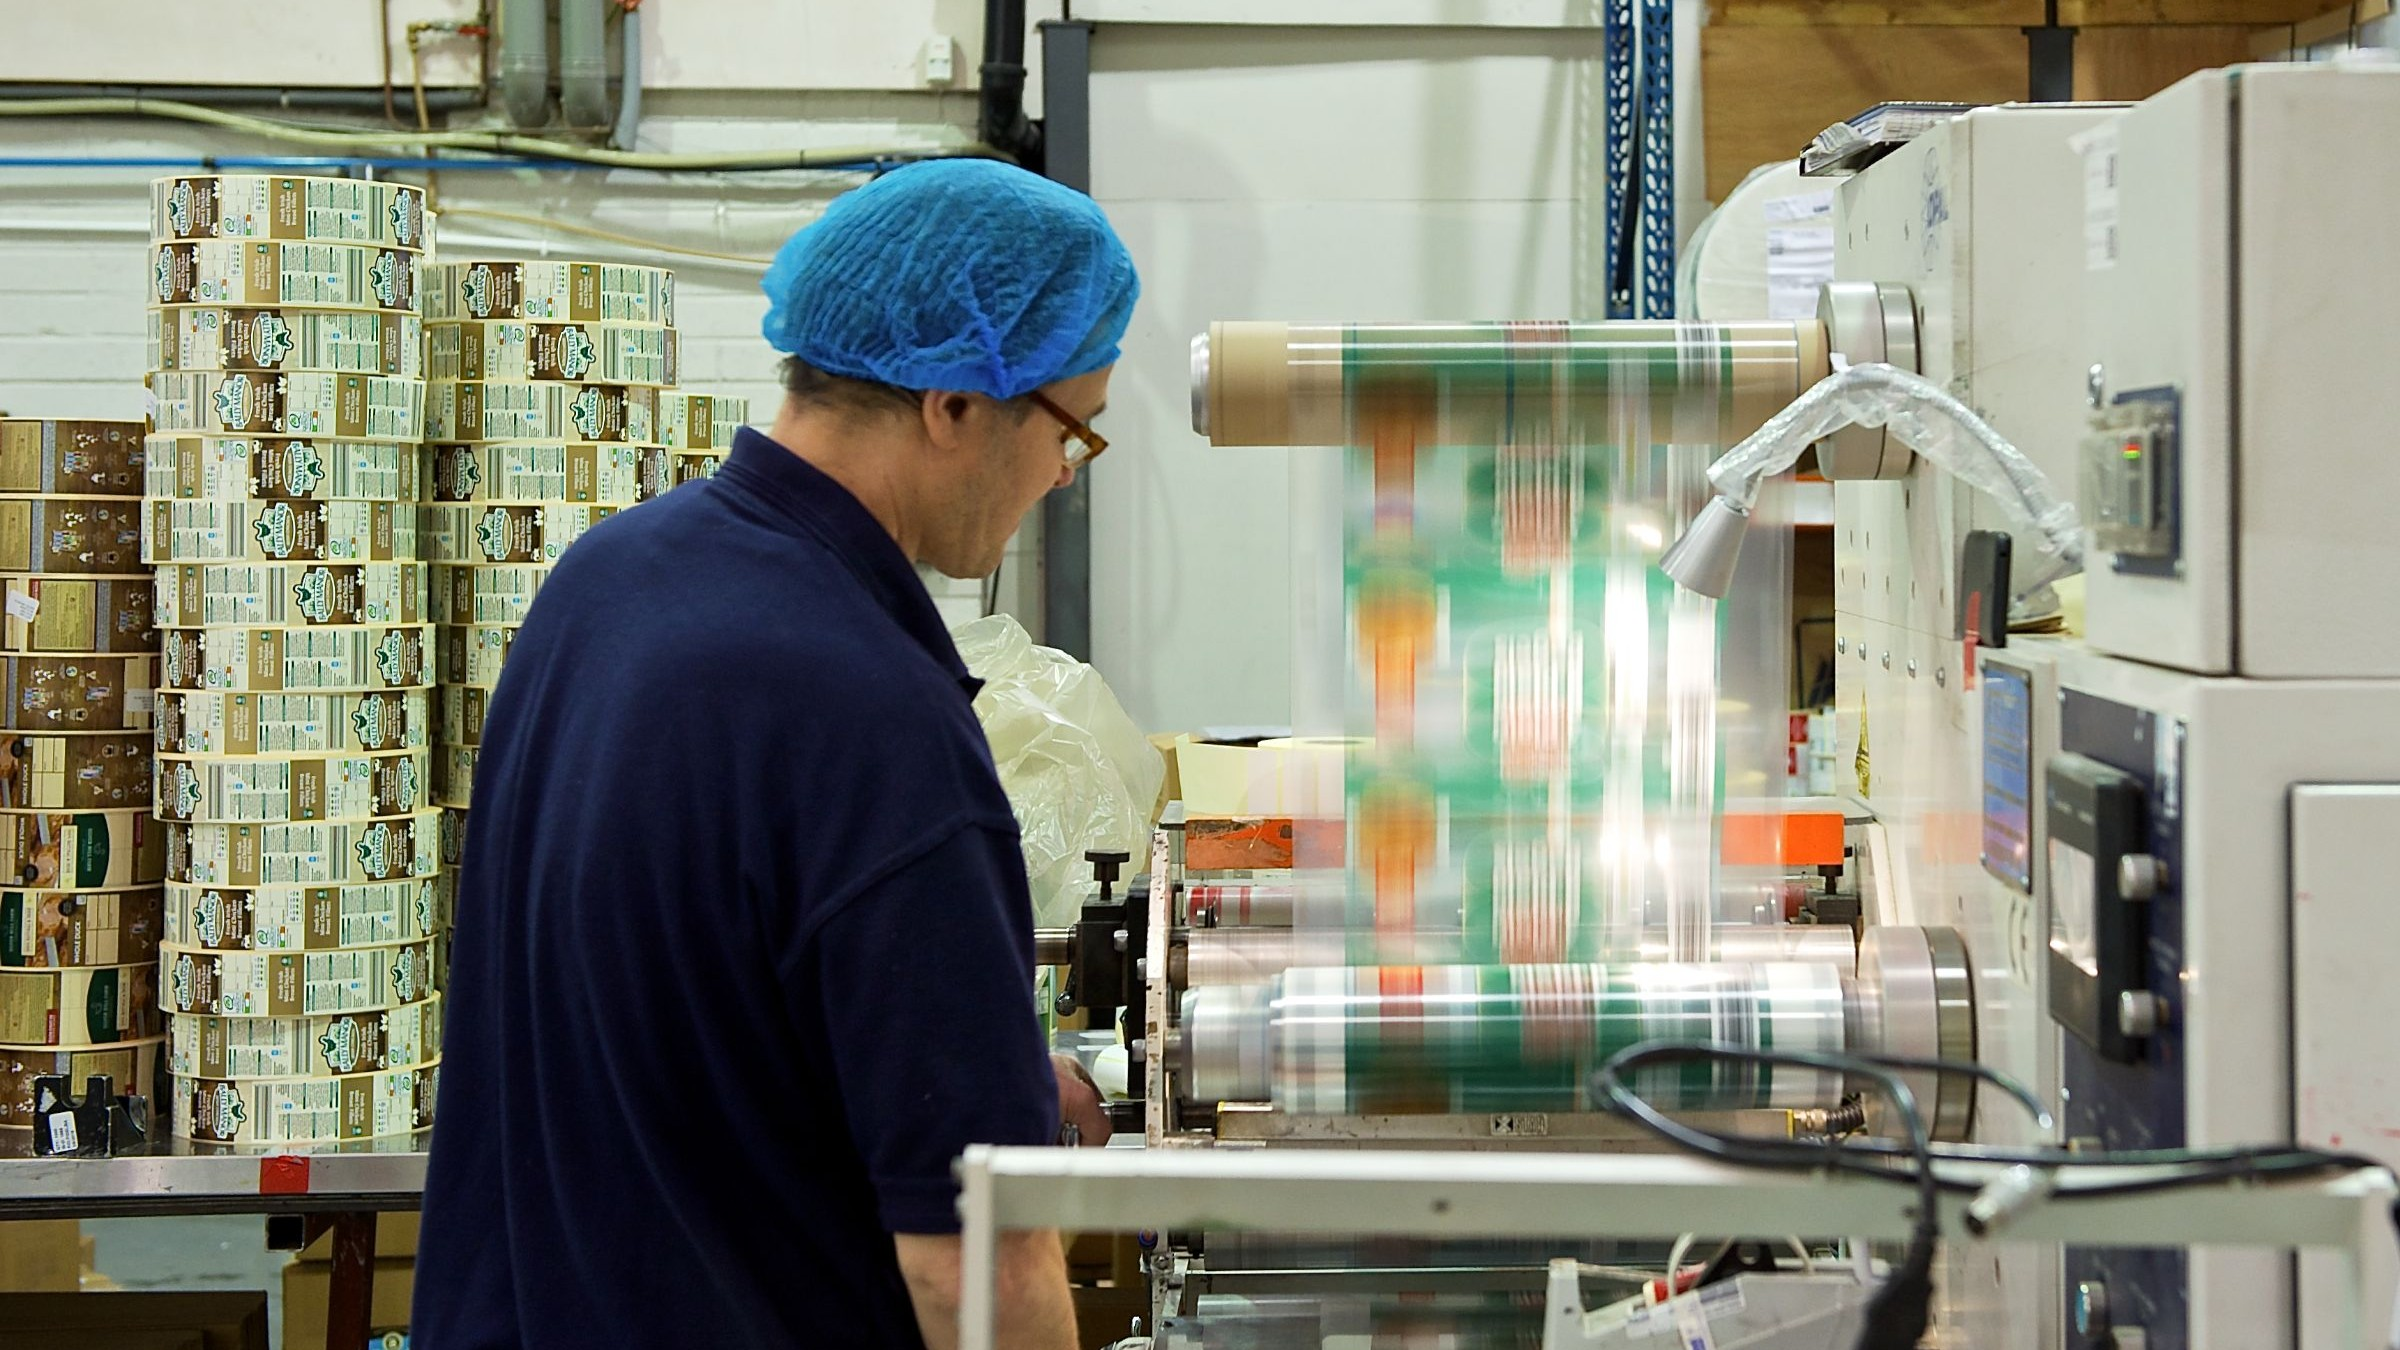 Watershed Group Manufacturing Facility Employee Working